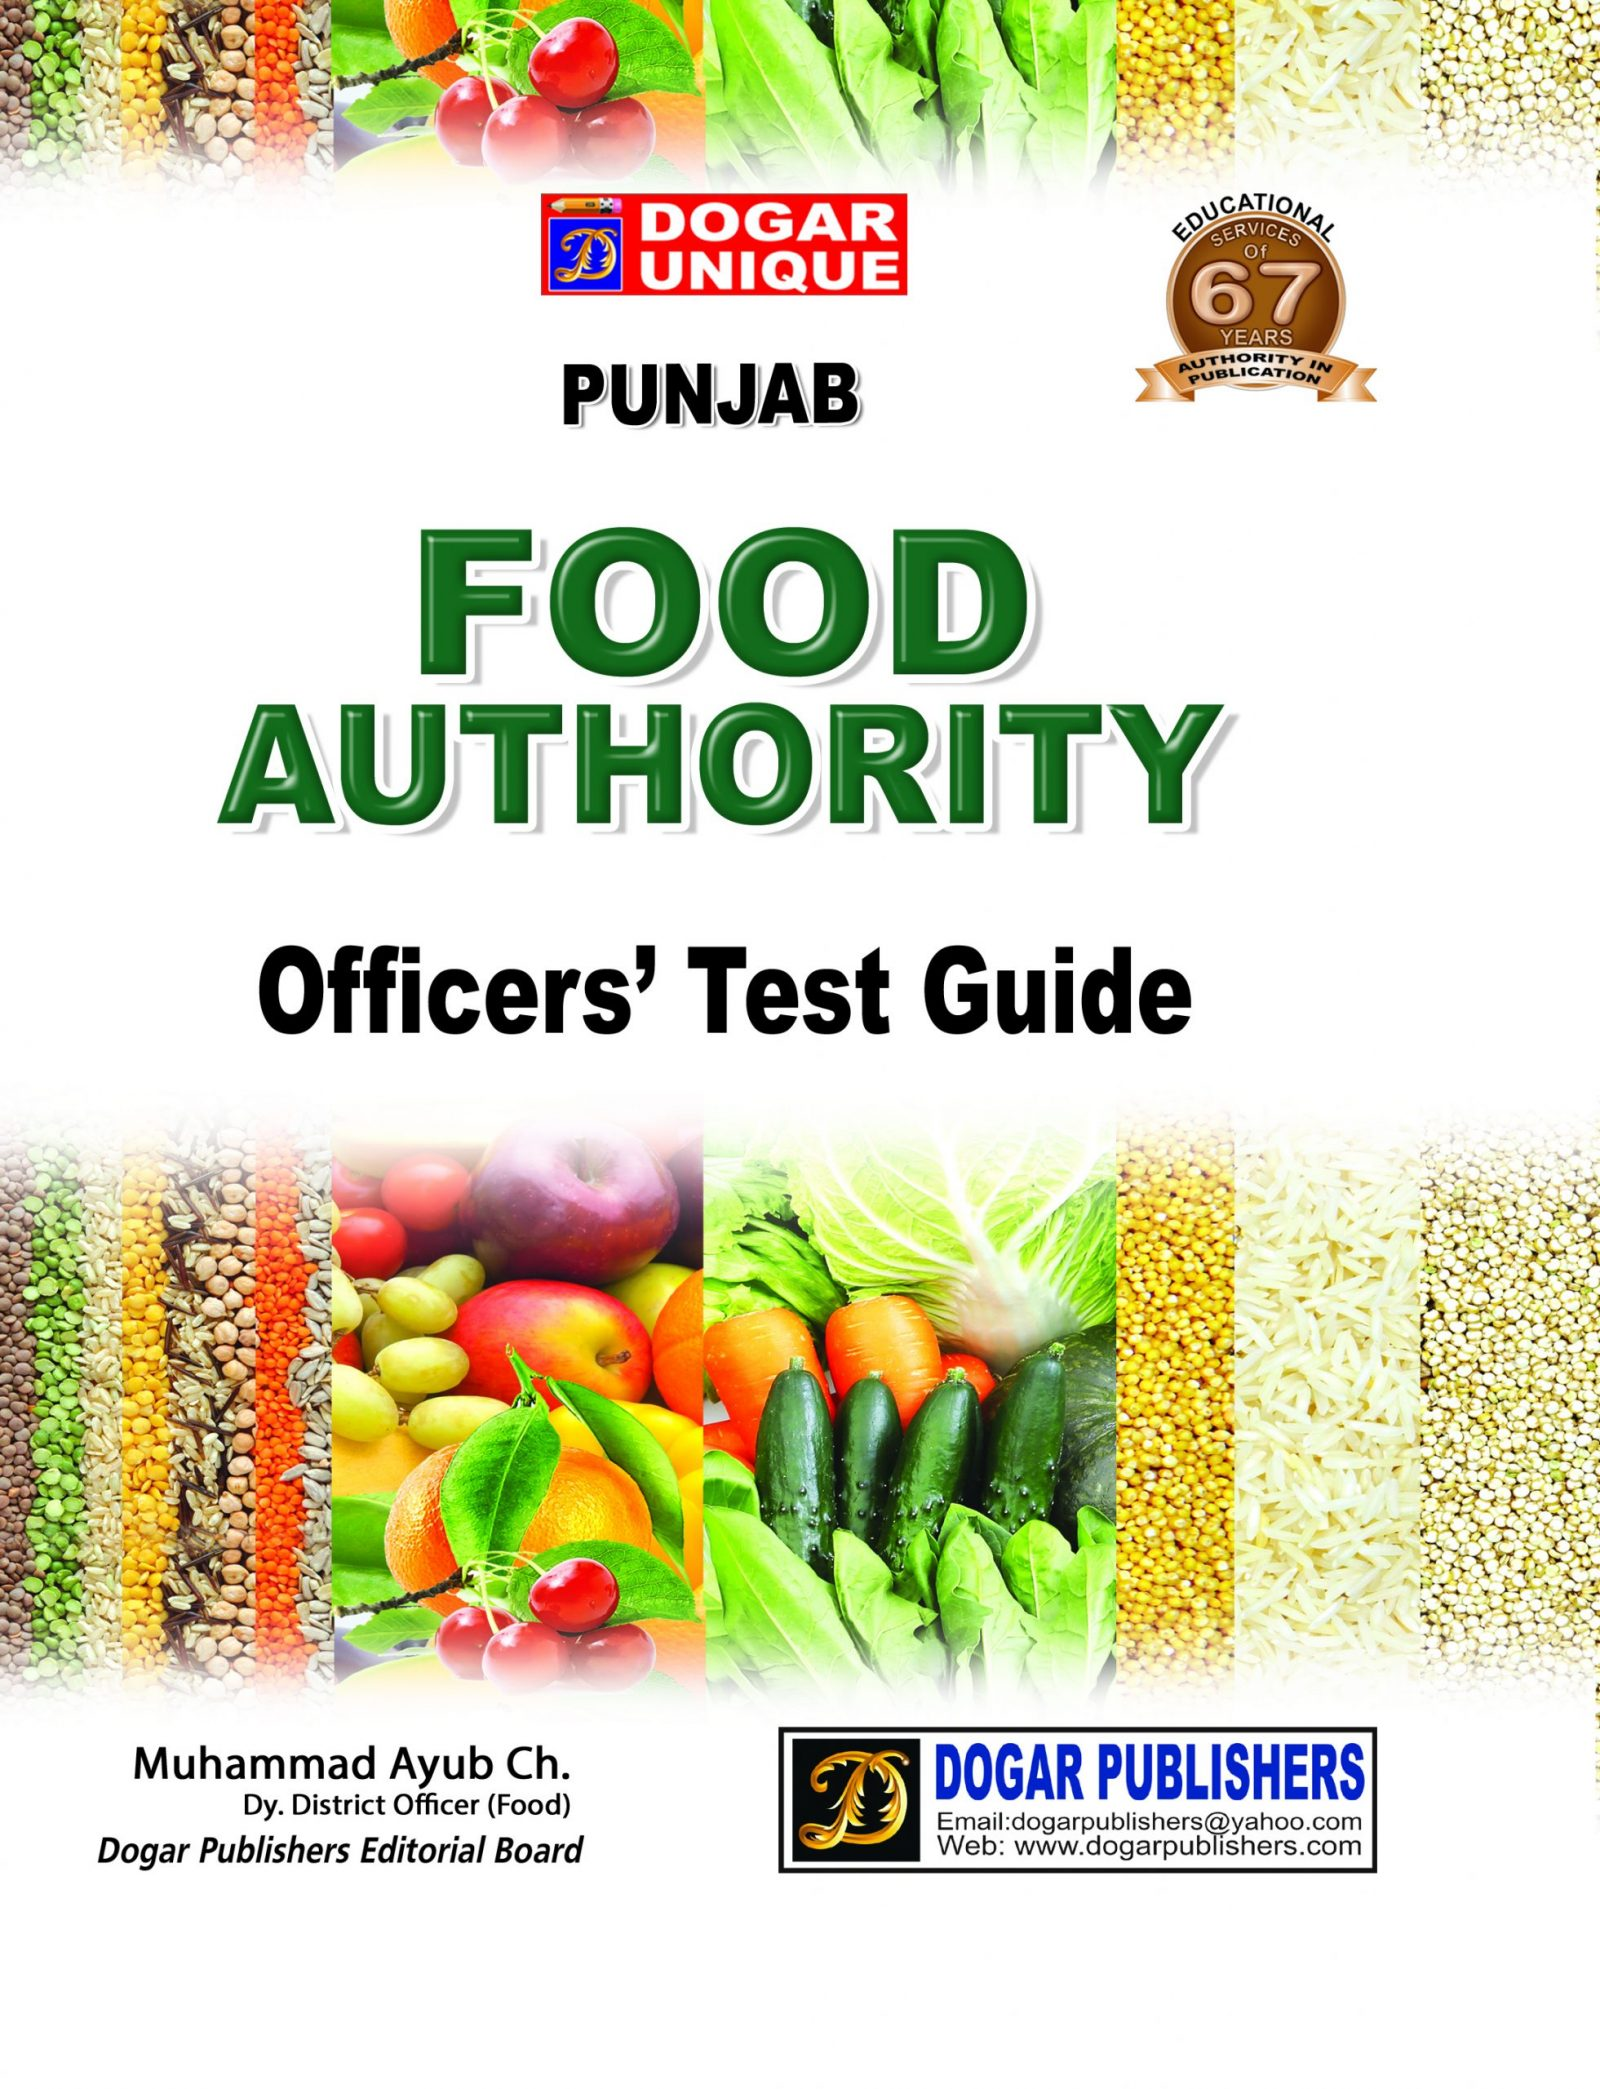 Food Authority Officers' Test Guide